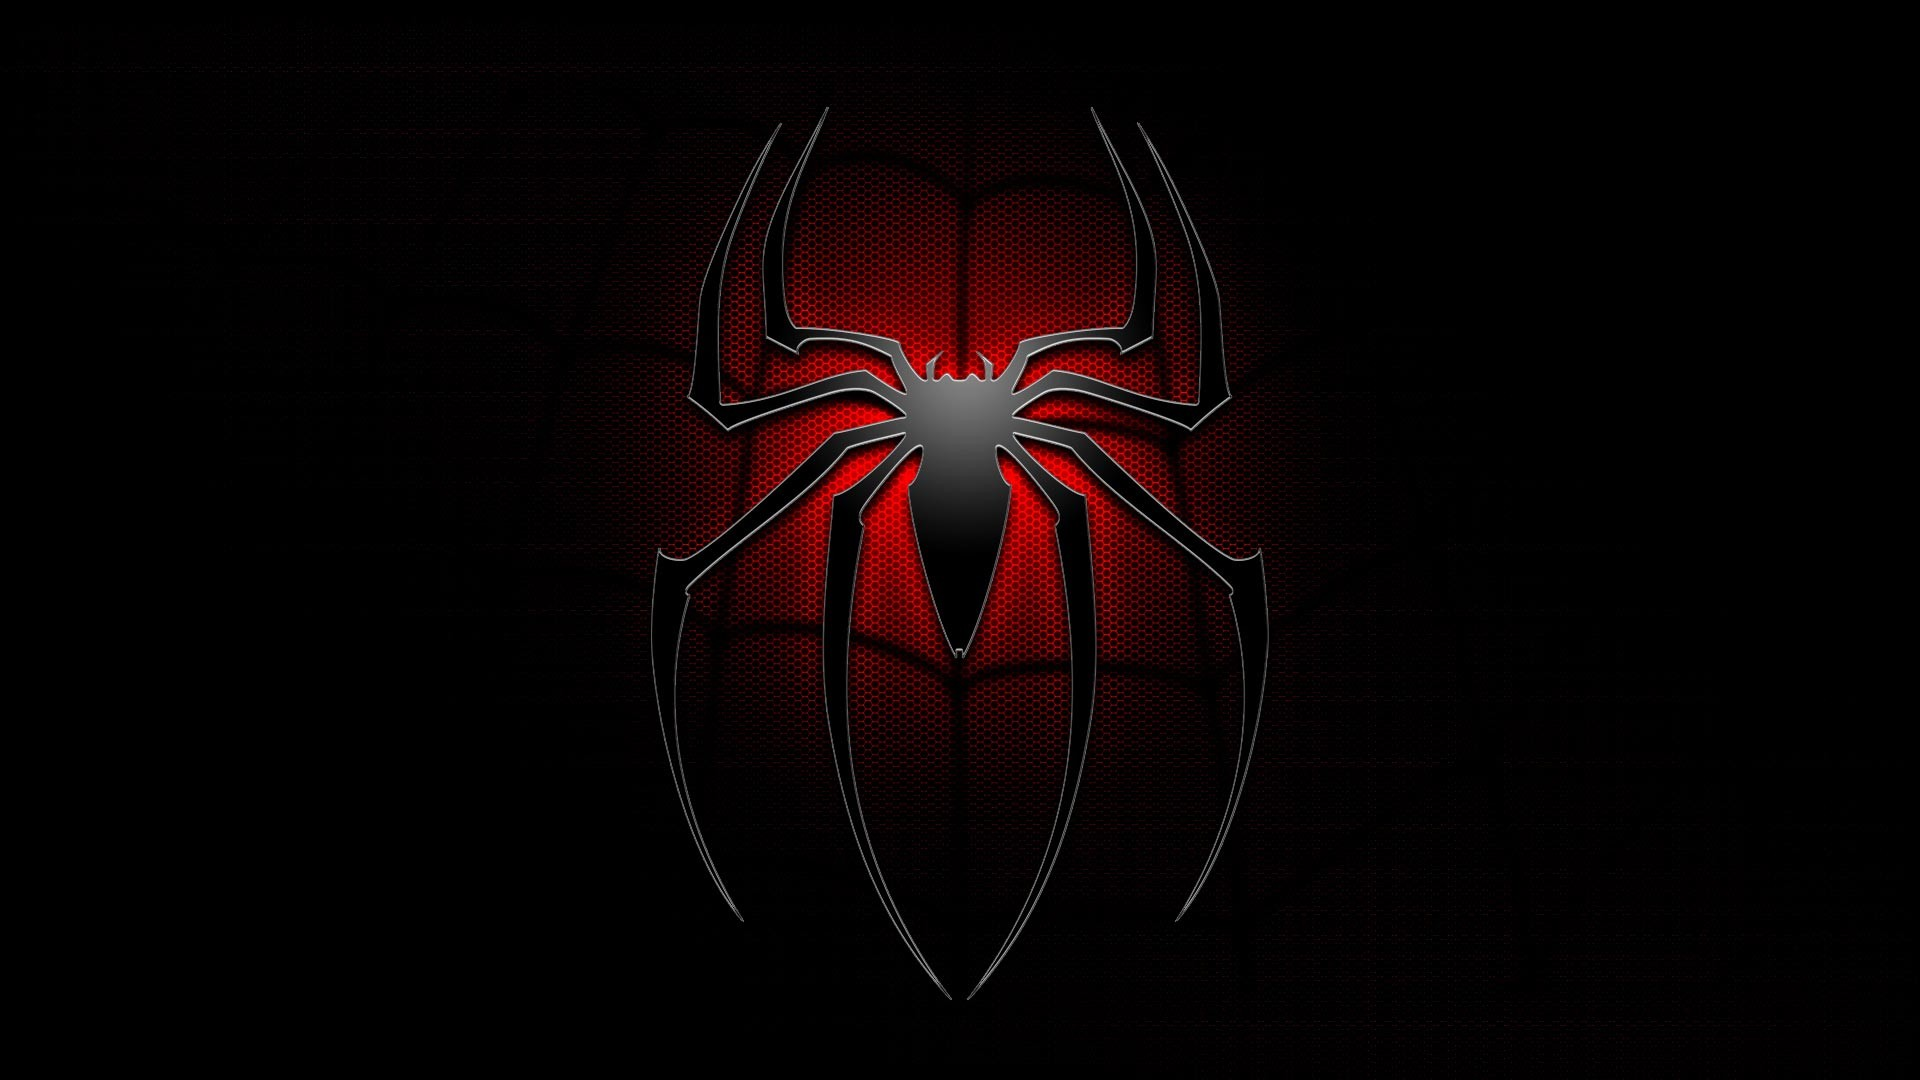 1920x1080 Download Spiderman Logo HD Wallpaper 6518 Full Size